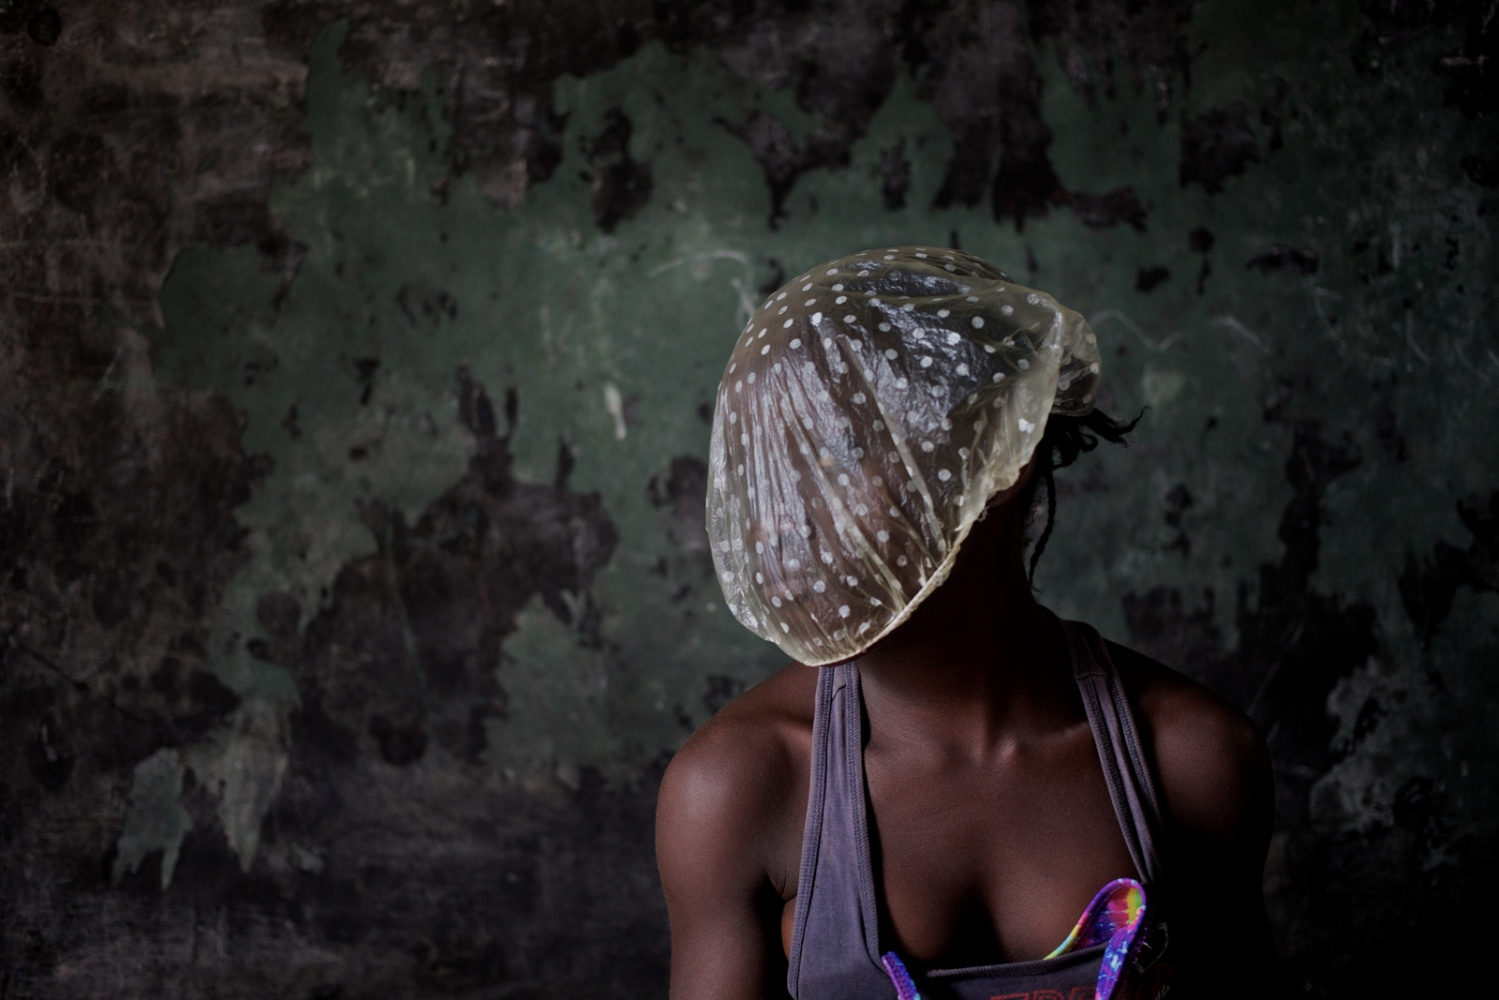 Monrovia, Liberia. July 2013. Girl plays with a shower cup used during the rainy season to protect hair.